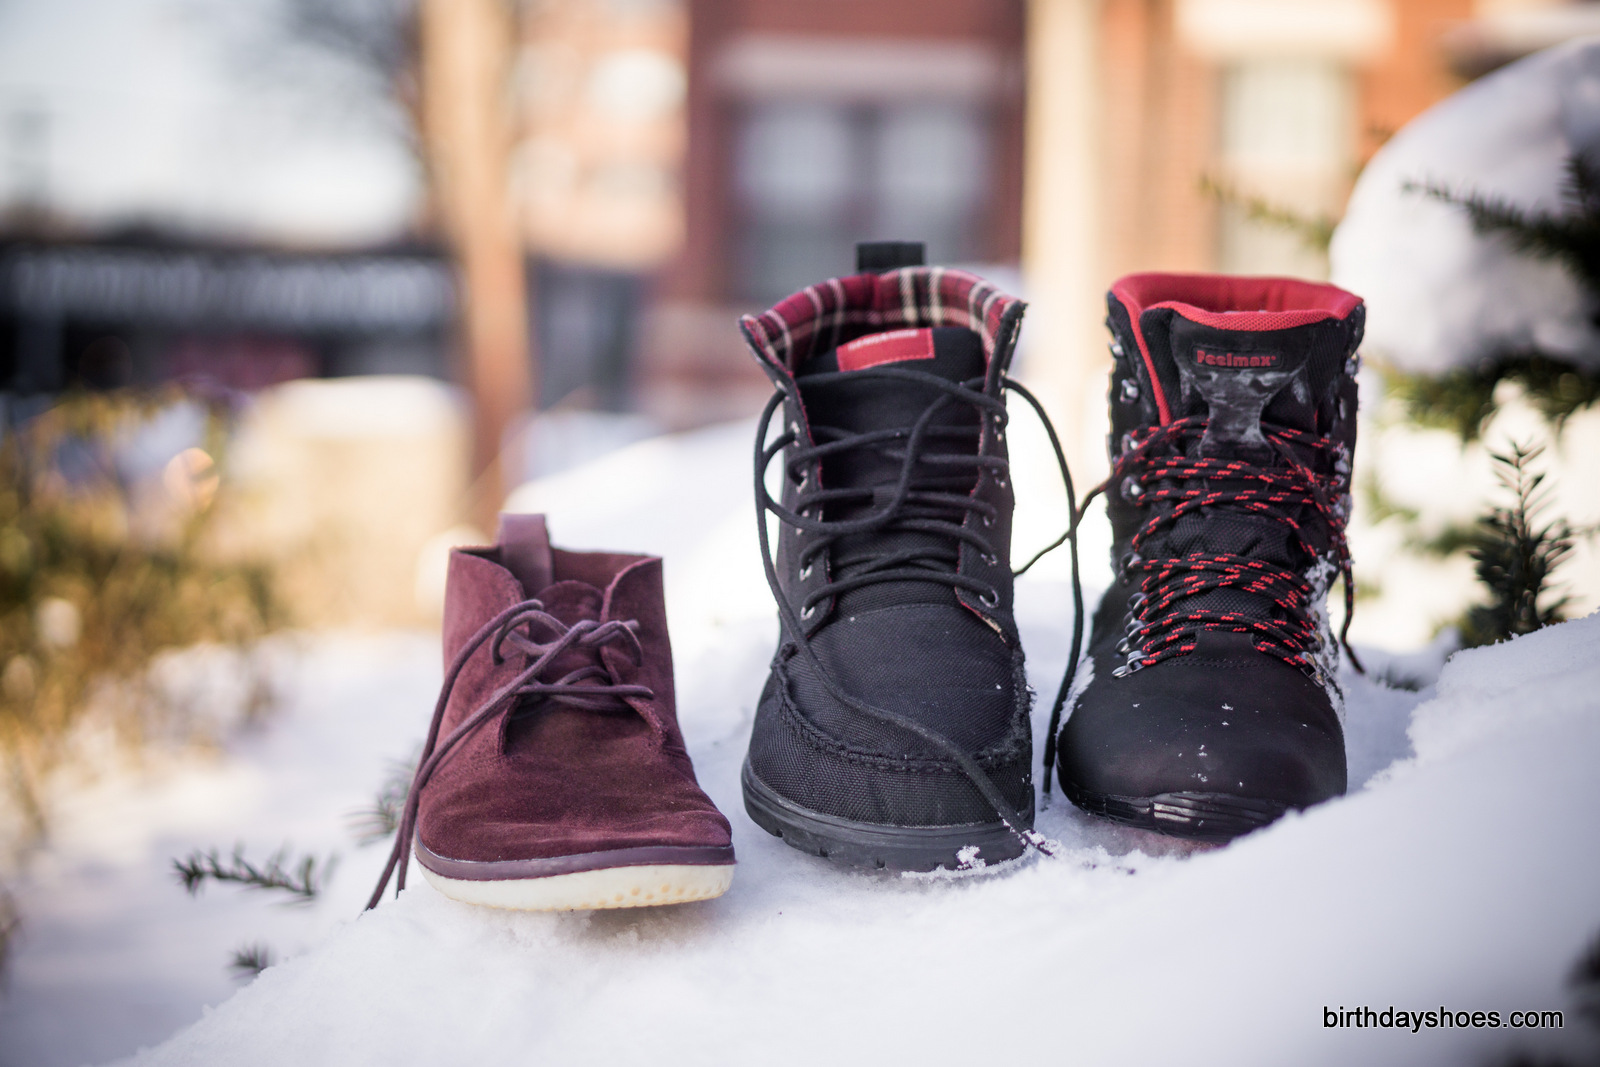 From left to right, the VivoBarefoot Gobi, the Lems Boulder (in black), and the Kuuva 3.